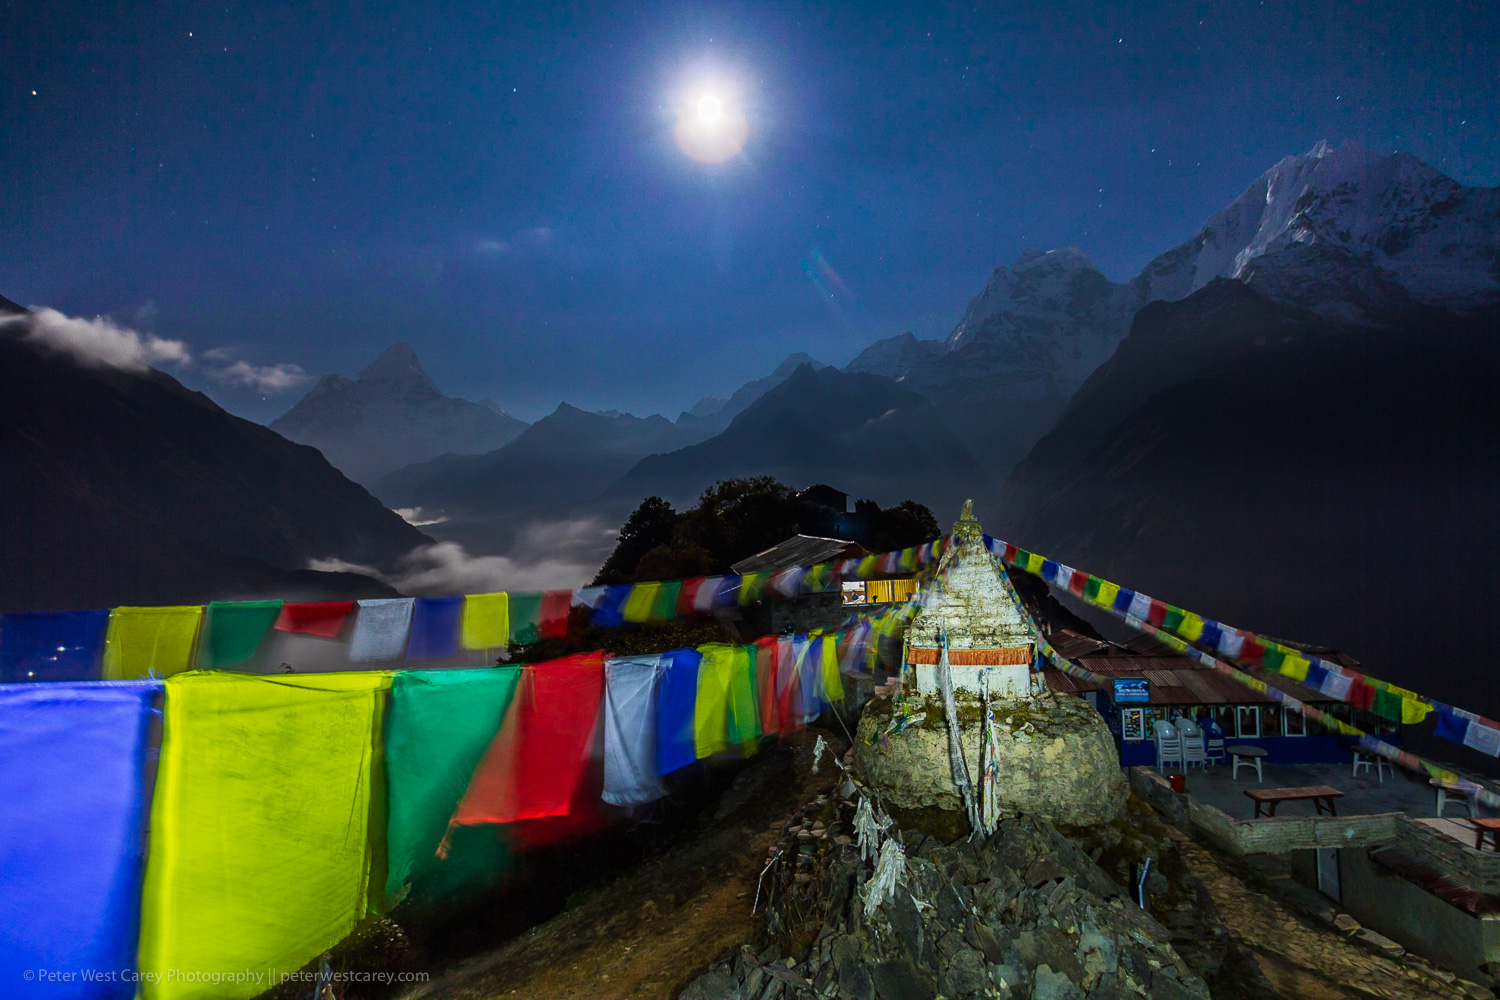 Image: Full moon and chorten with the Himalayas in the background. Mong La, Nepal